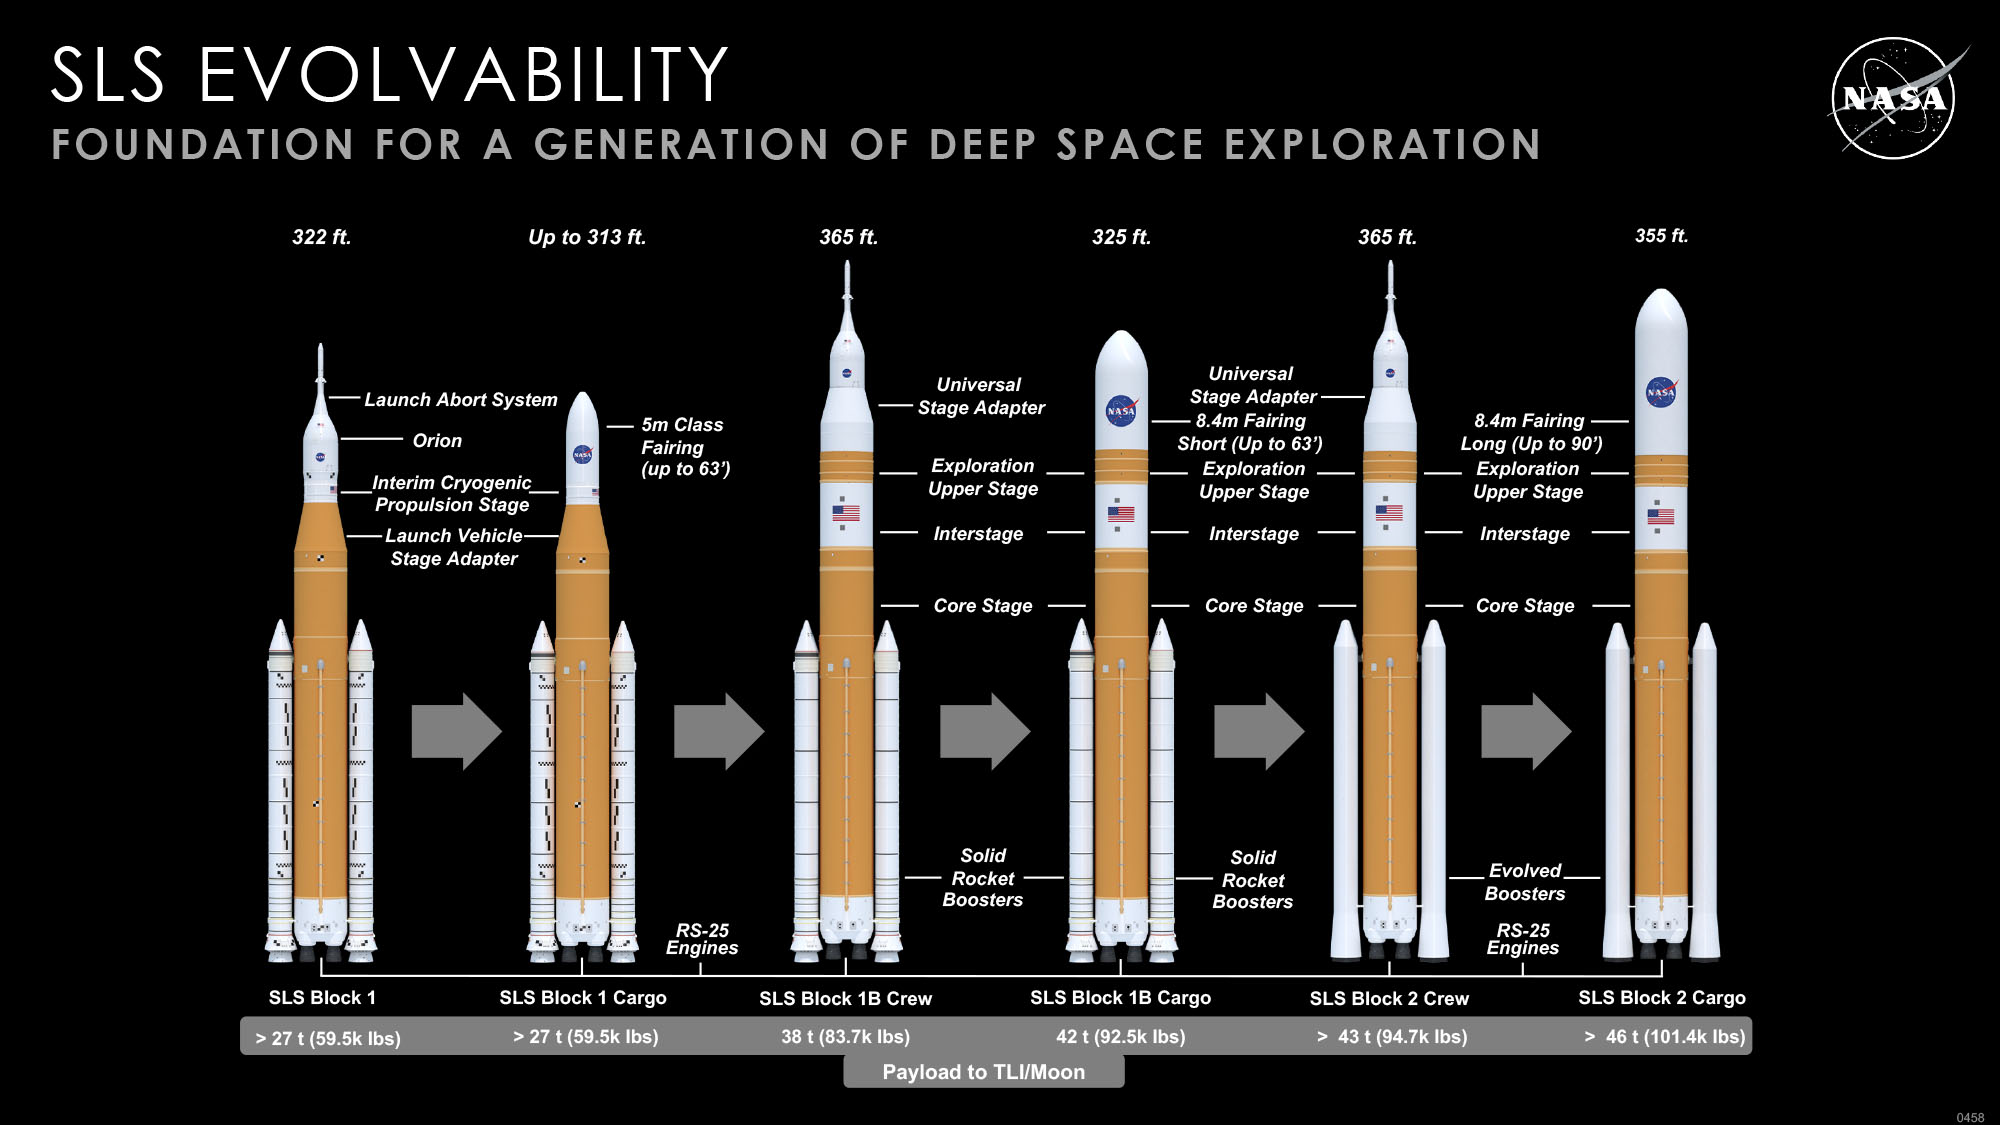 The first version of SLS is block 1, future upgrades were intended to increase its capabilities.